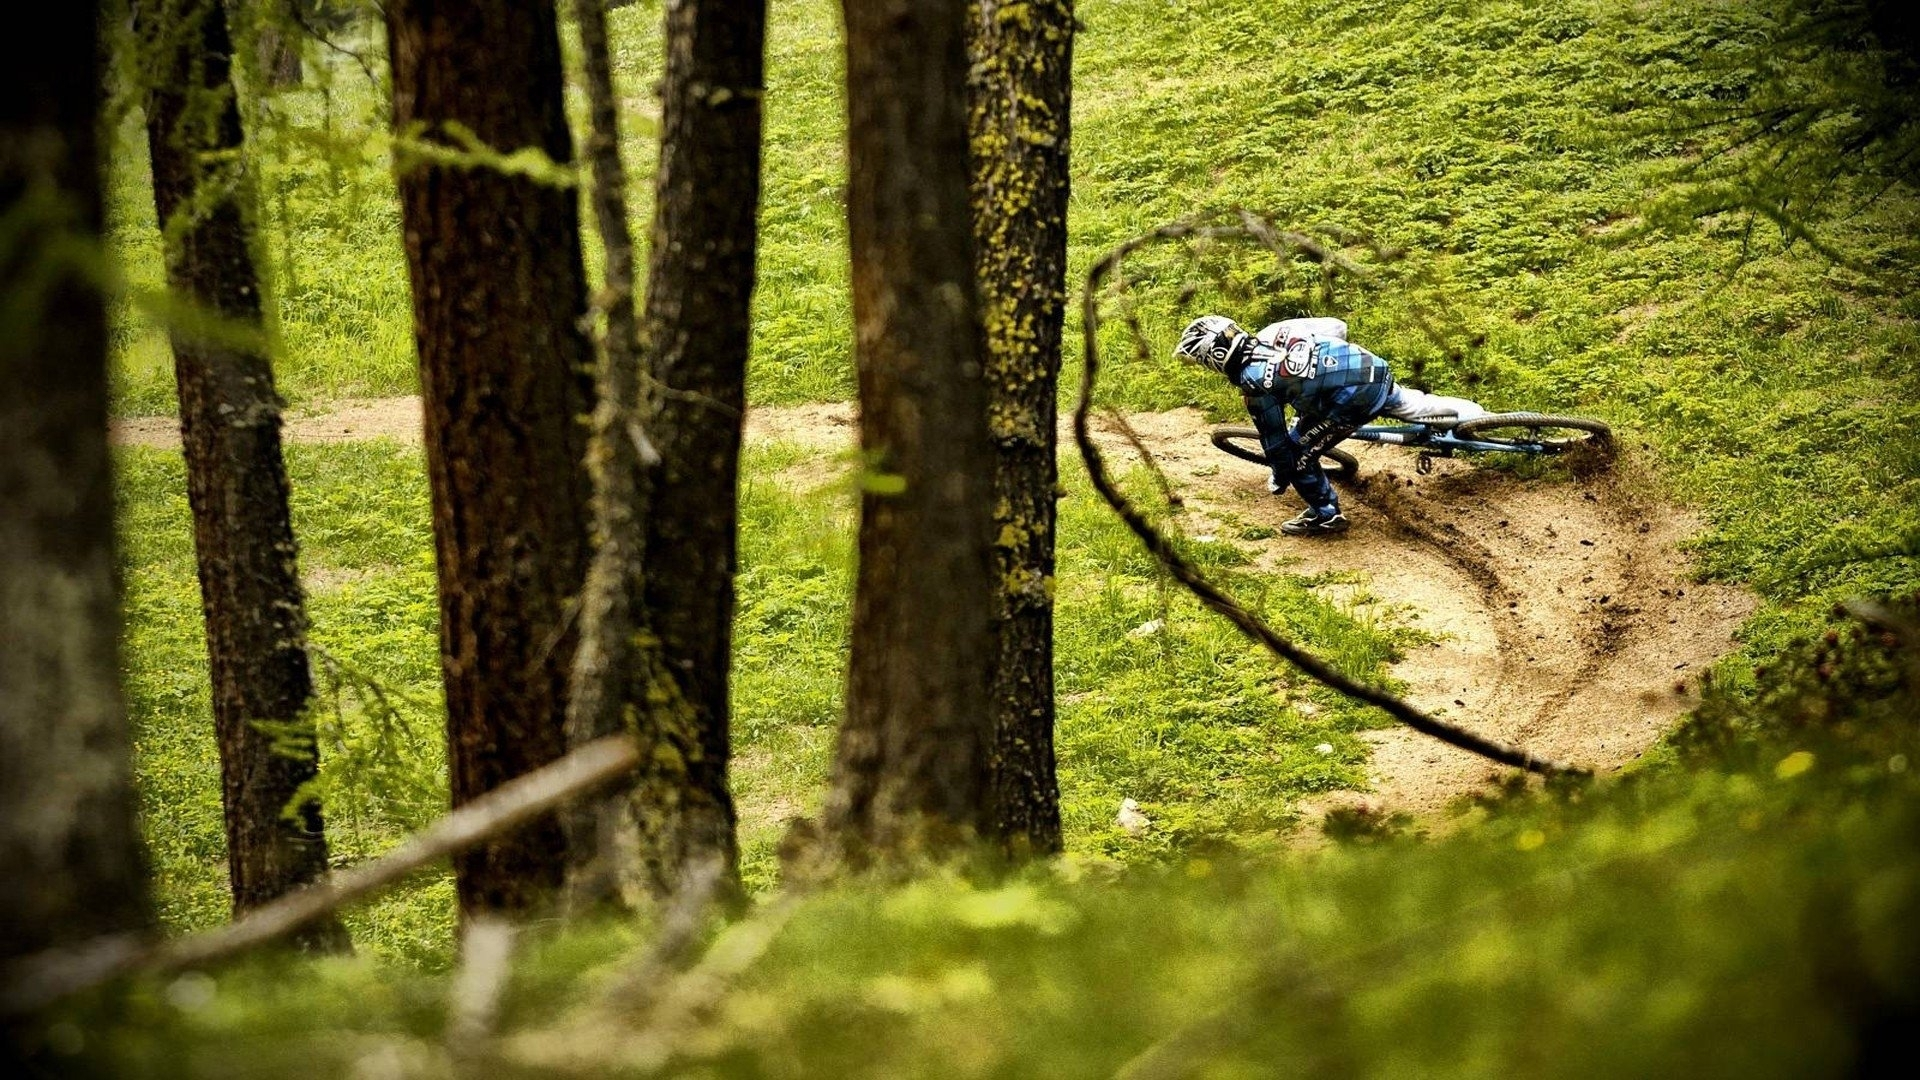 15 mountain bike hd wallpapers | background images - wallpaper abyss